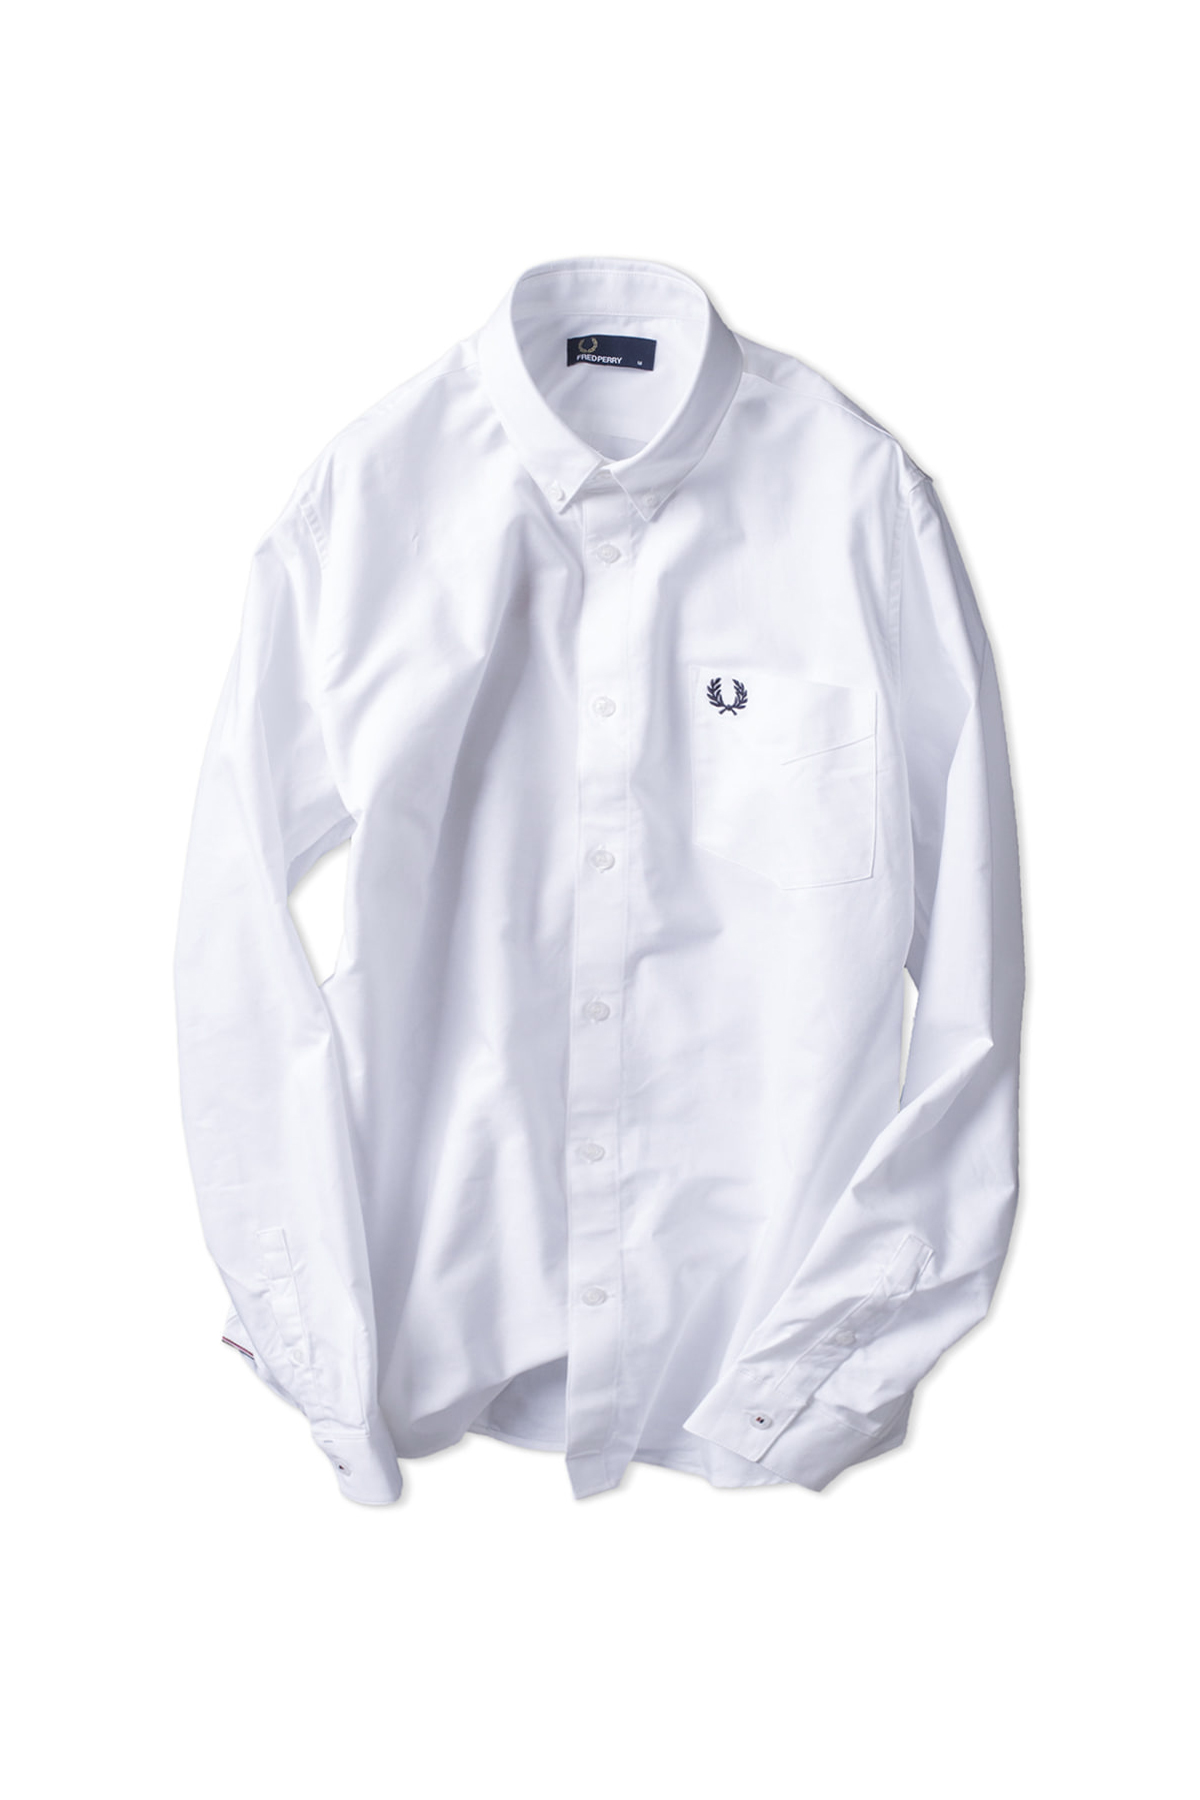 FRED PERRY : Classic Oxford Shirt (White)